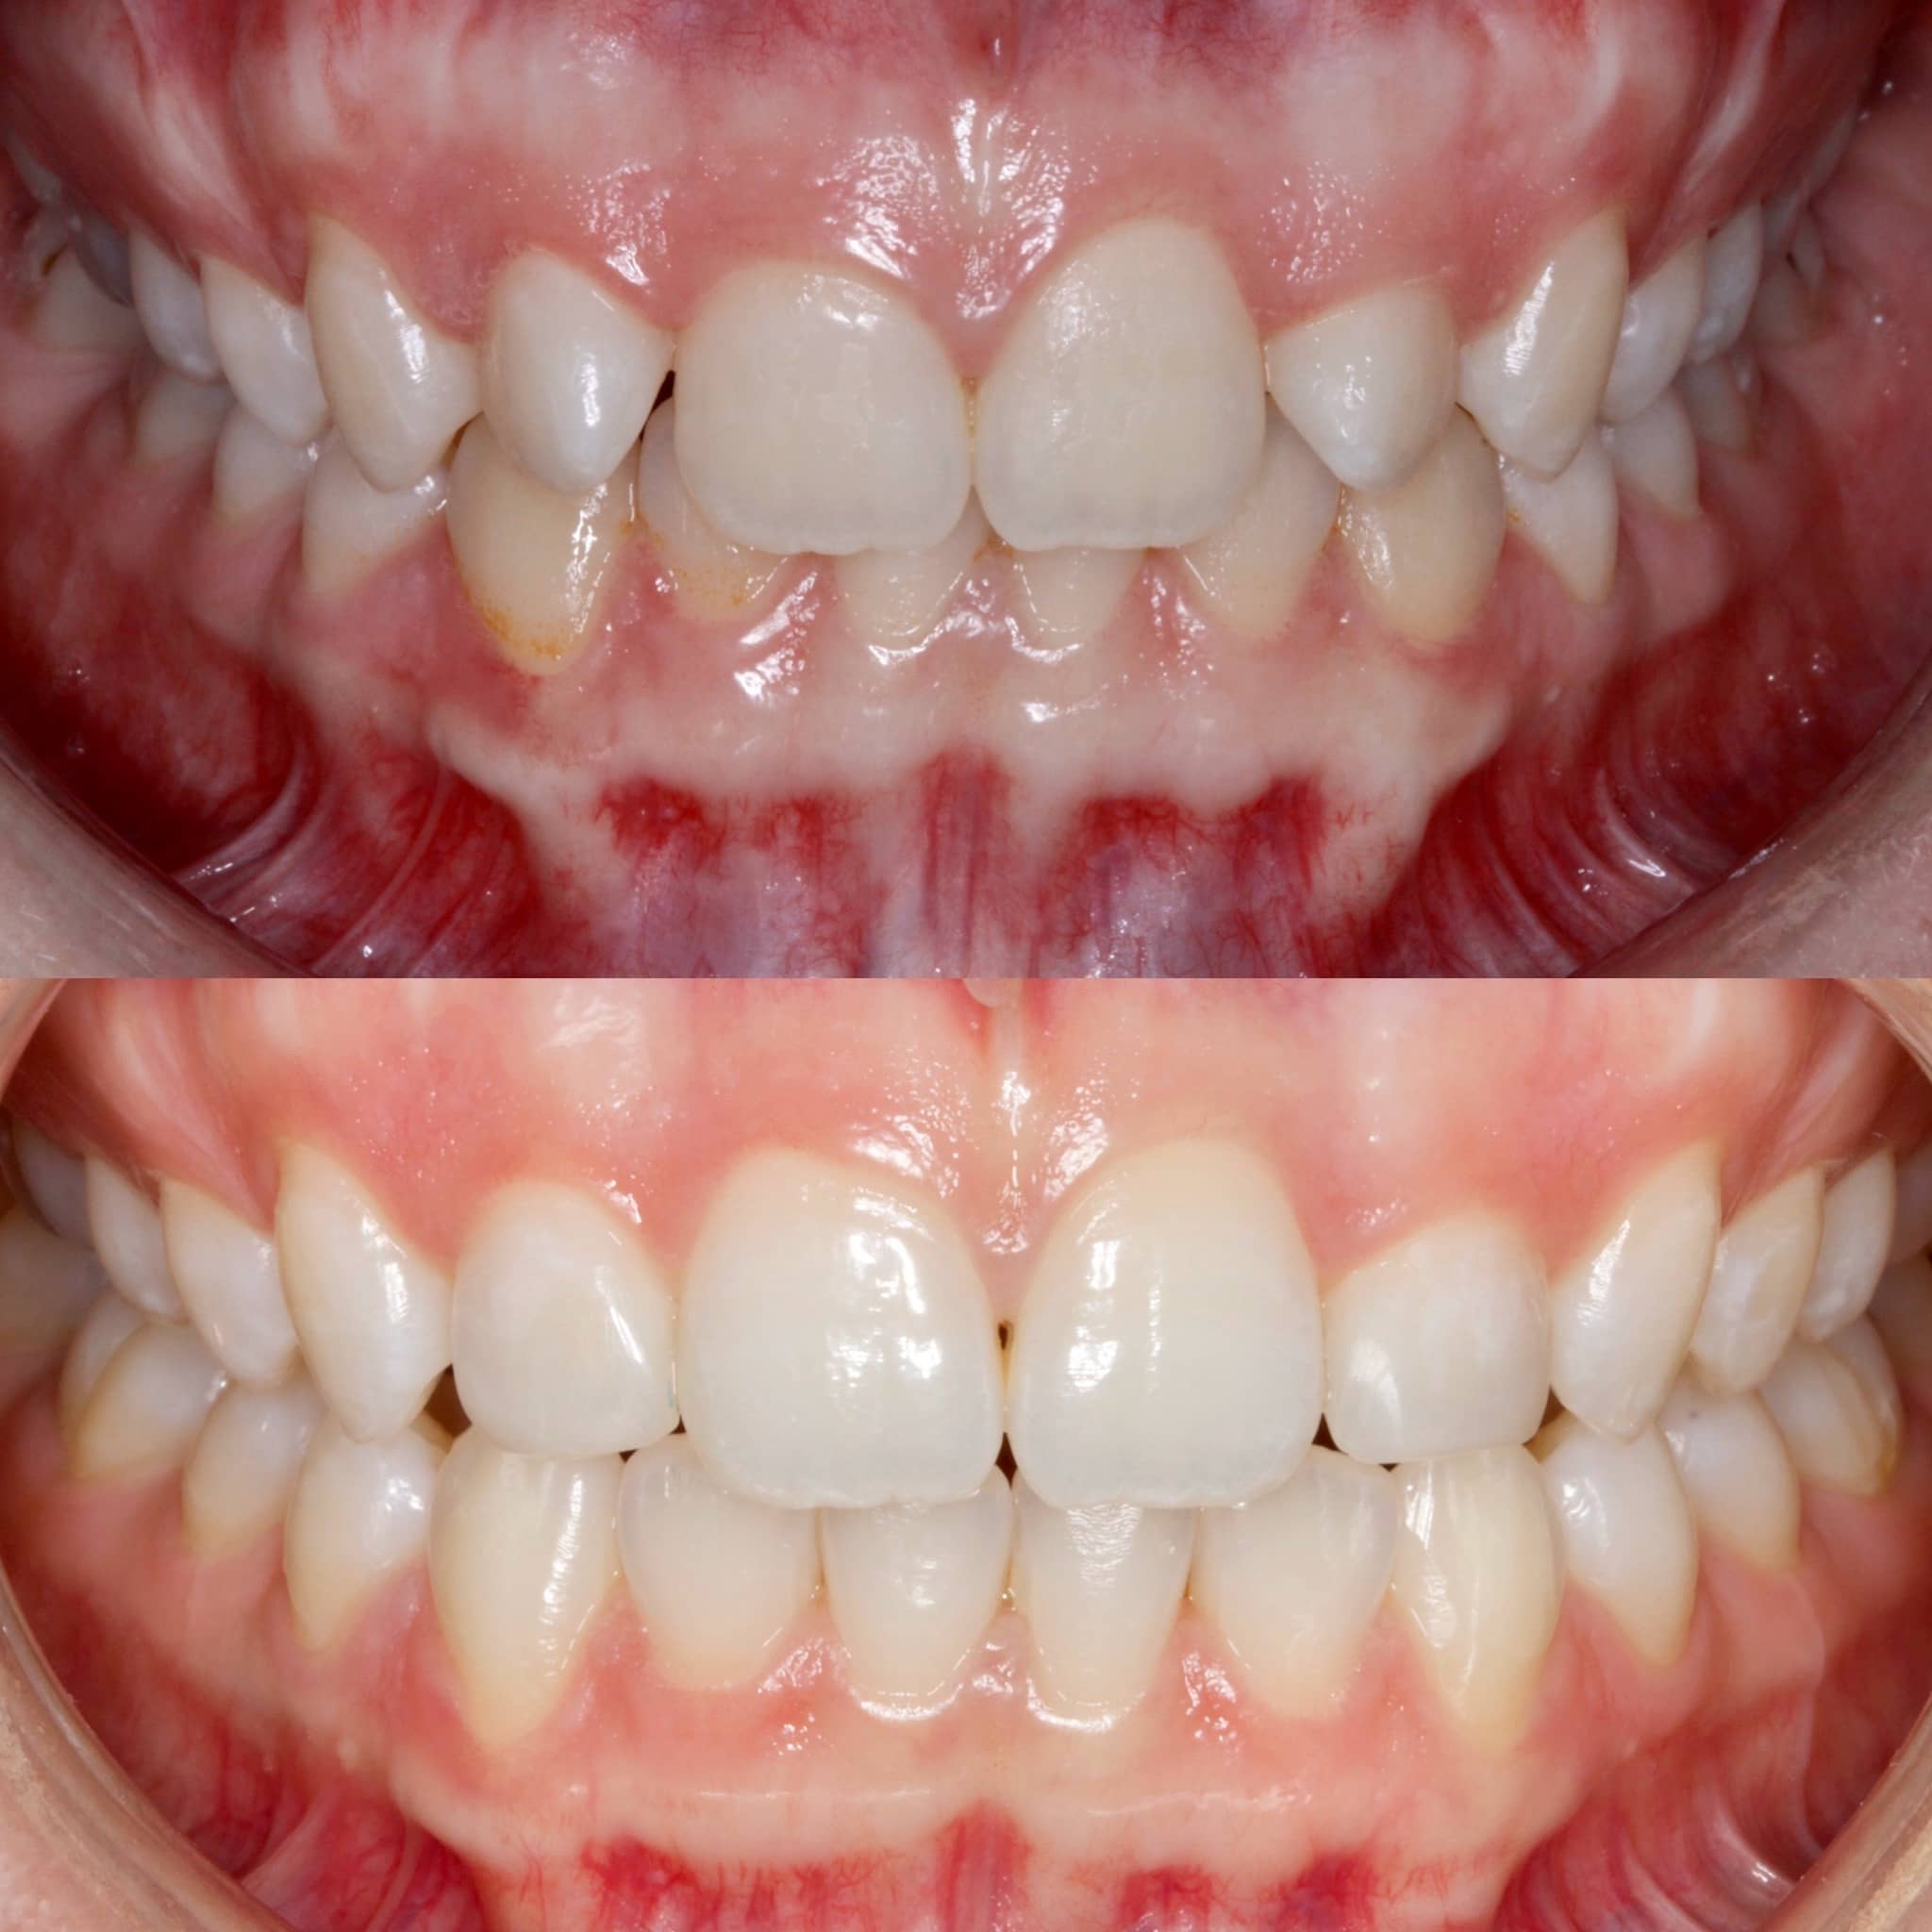 Teeth up close showing what before and after teeth bonding looks like.